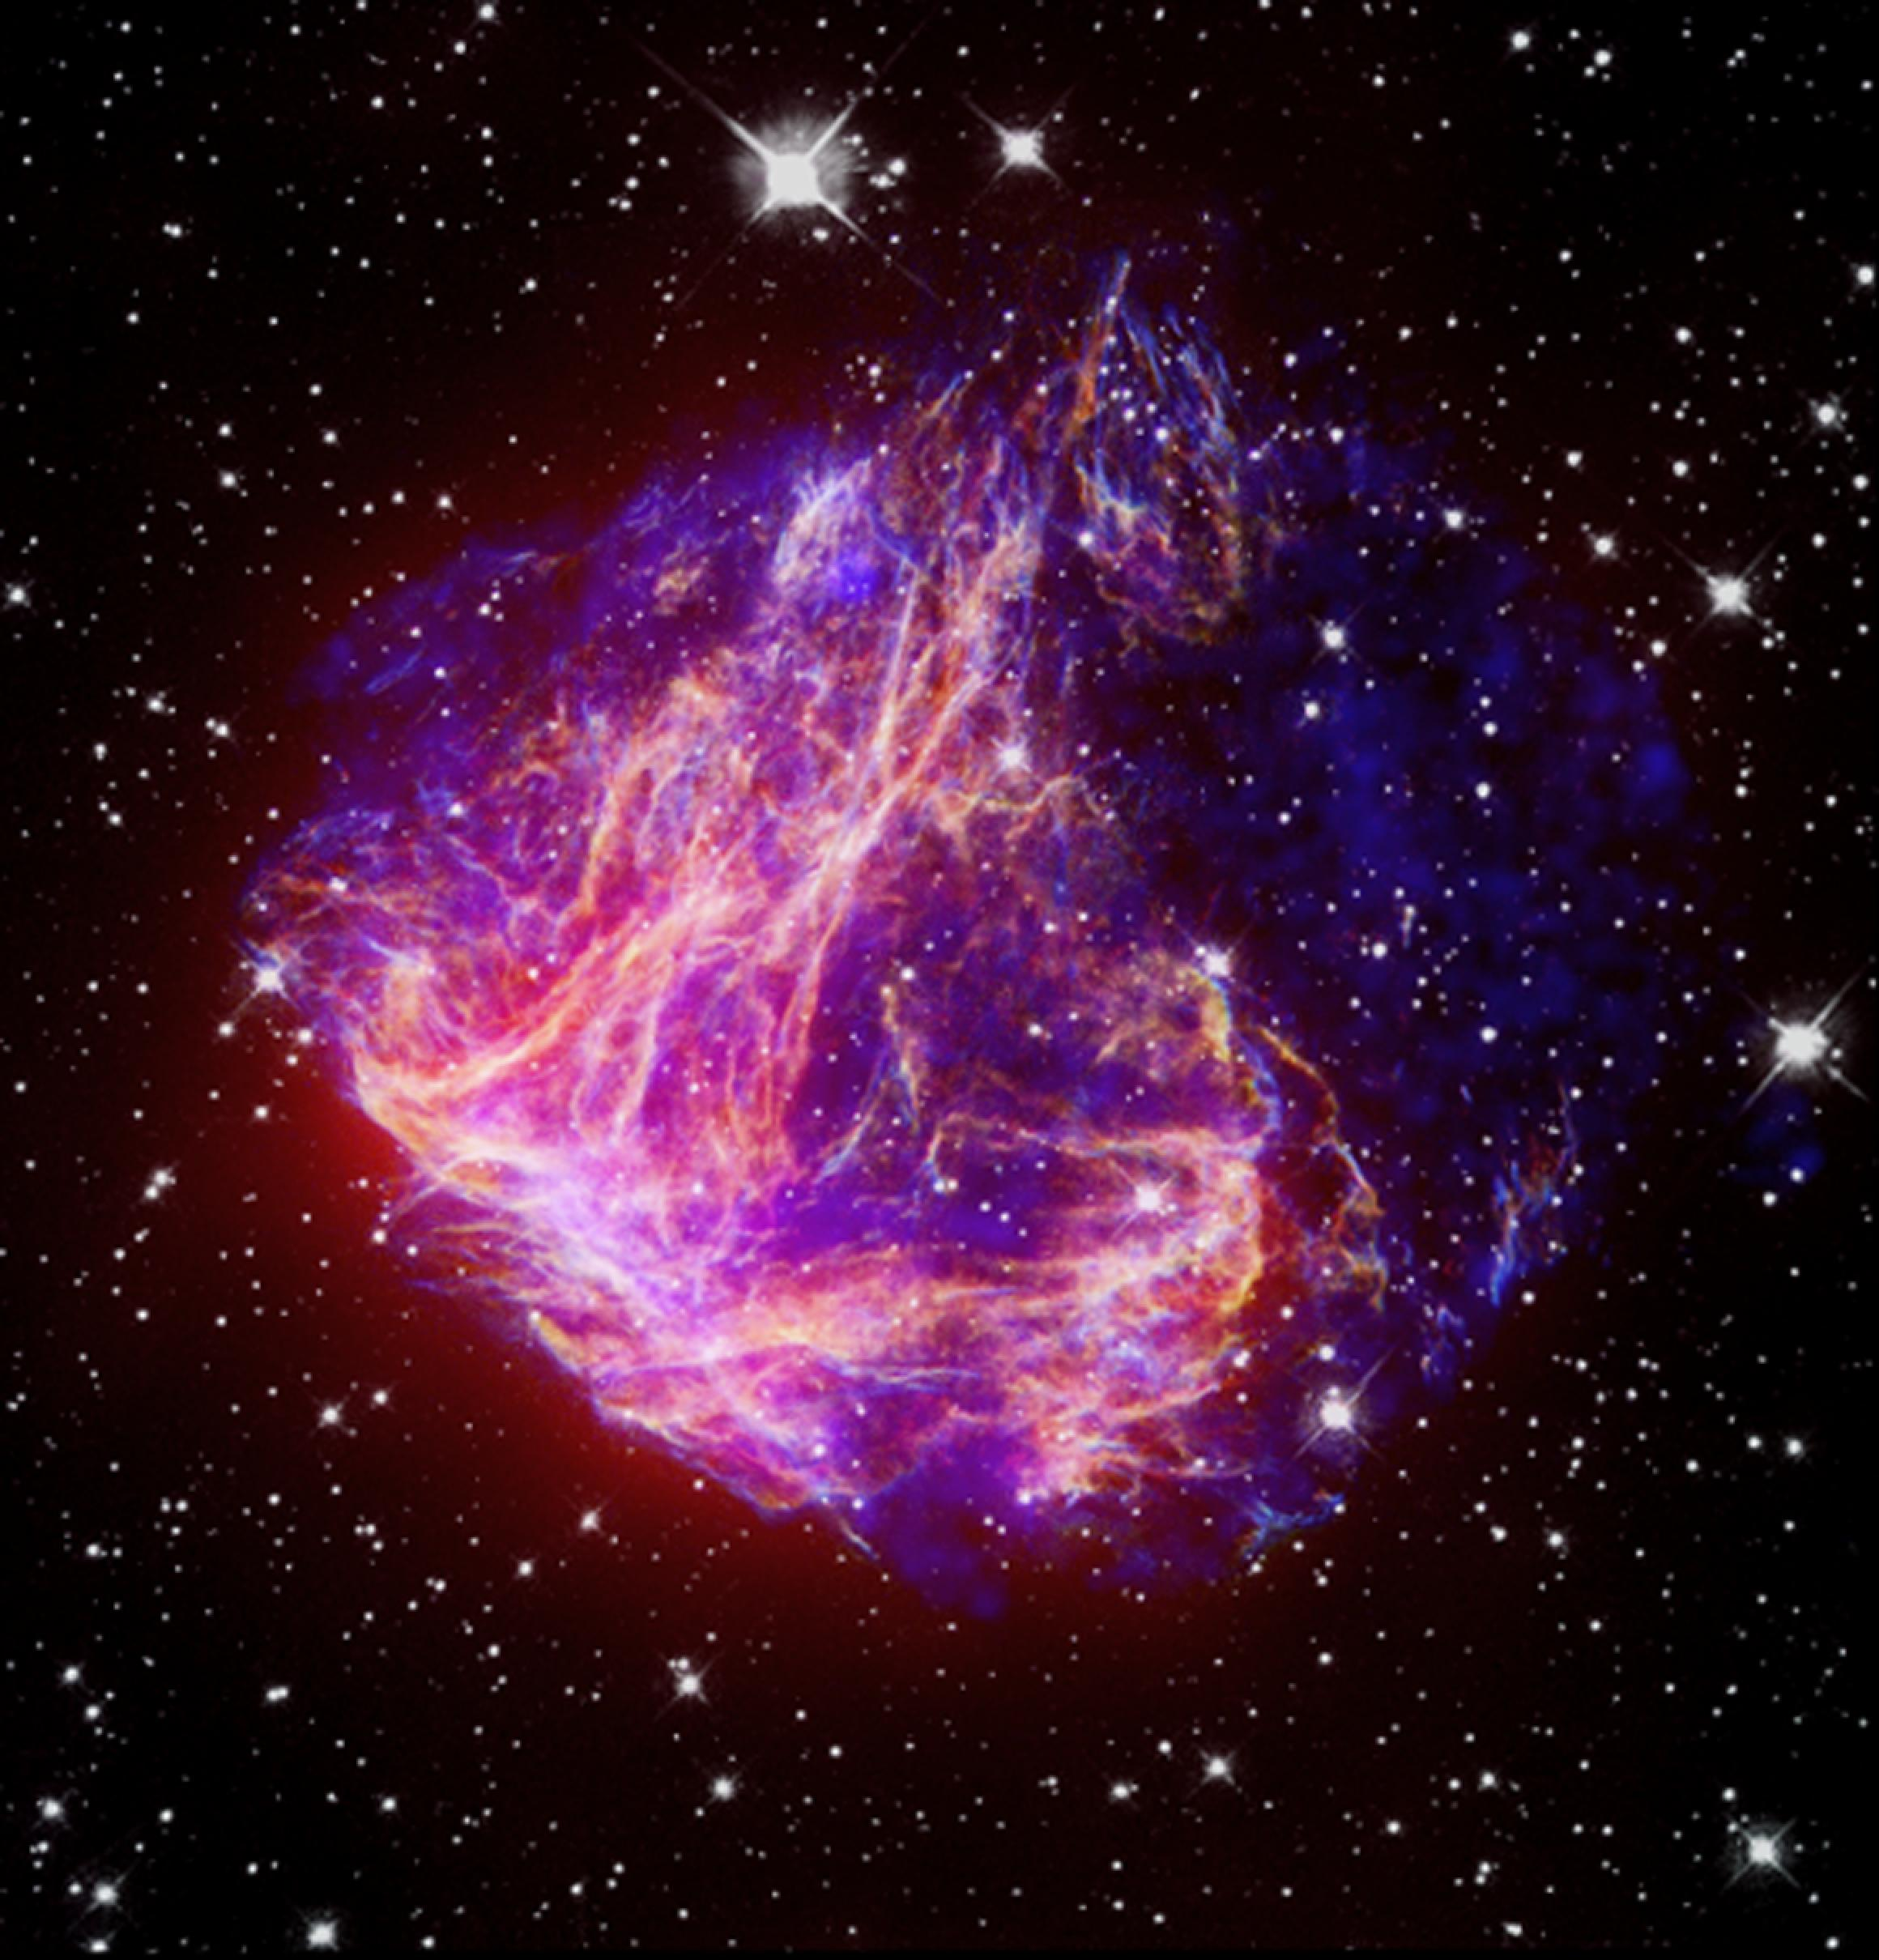 Space Images | Stellar Debris in the Large Magellanic Cloud